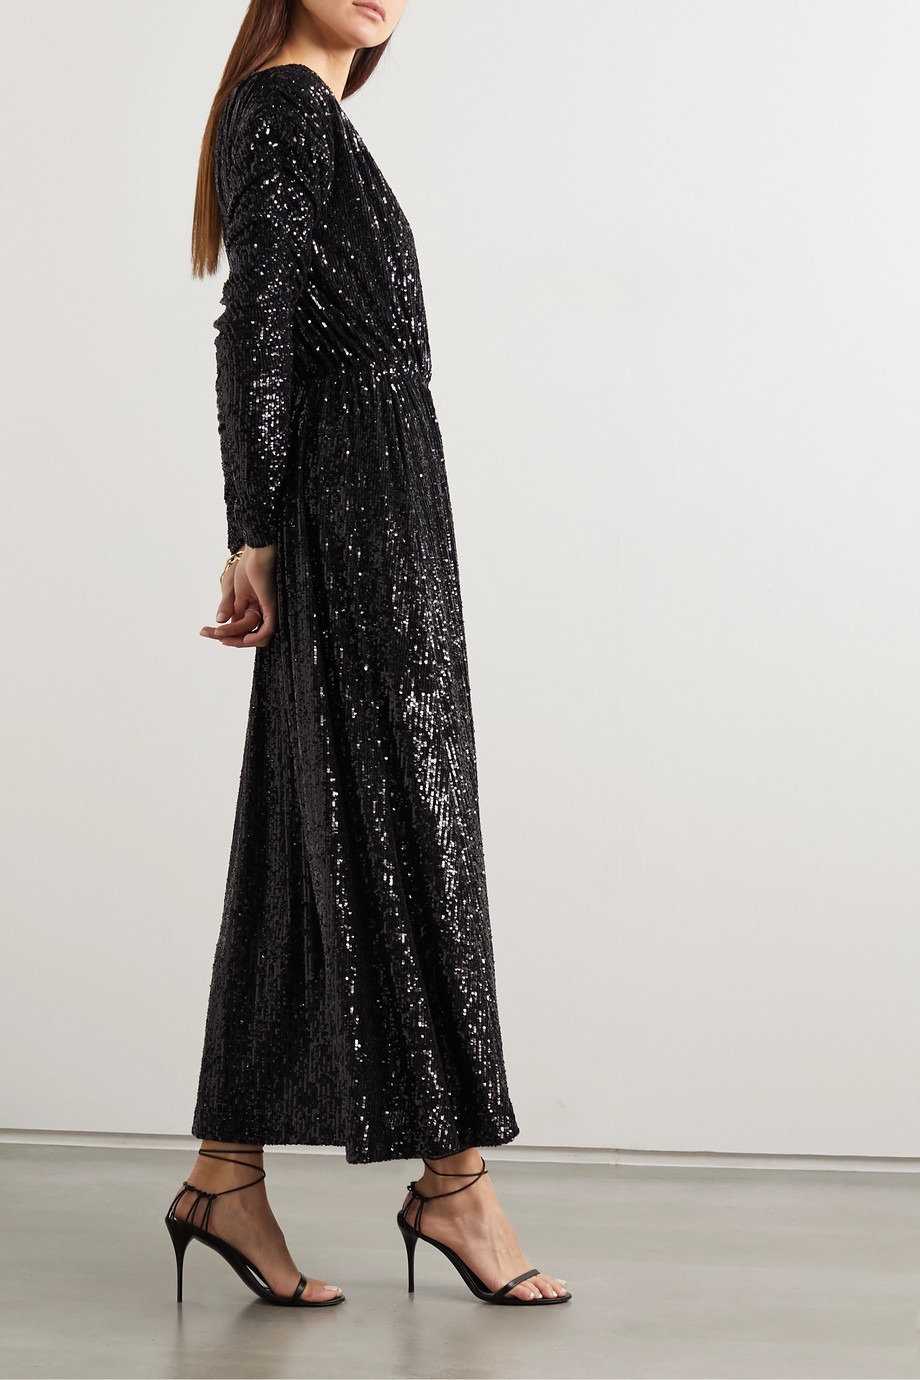 SAINT LAURENT Sequined jersey maxi dress